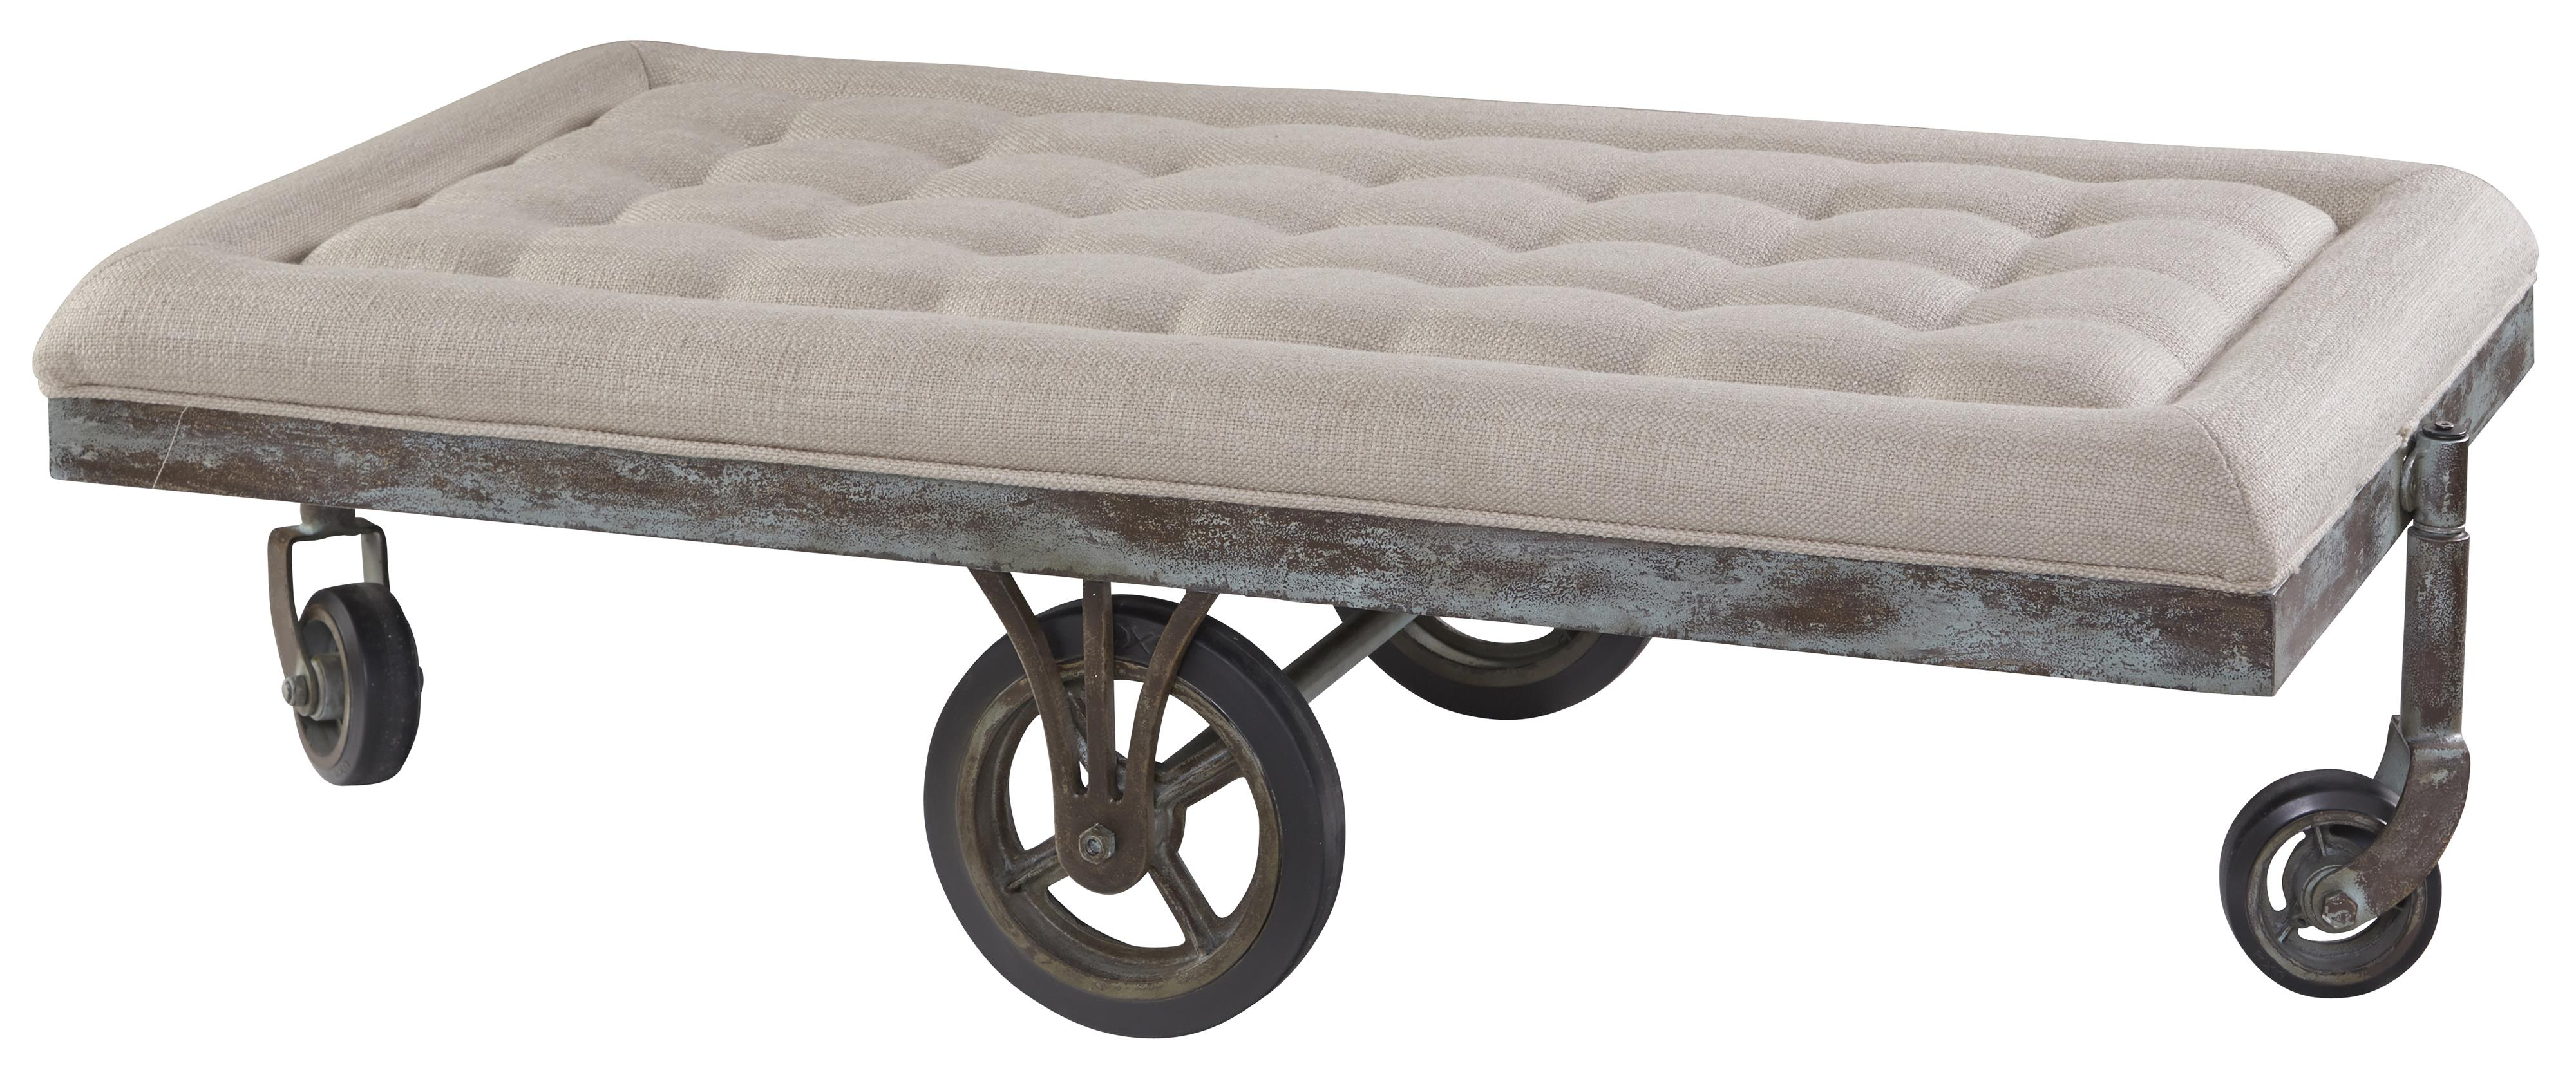 Williamsburg Upholstered Factory Cart Cocktail Table by A R T